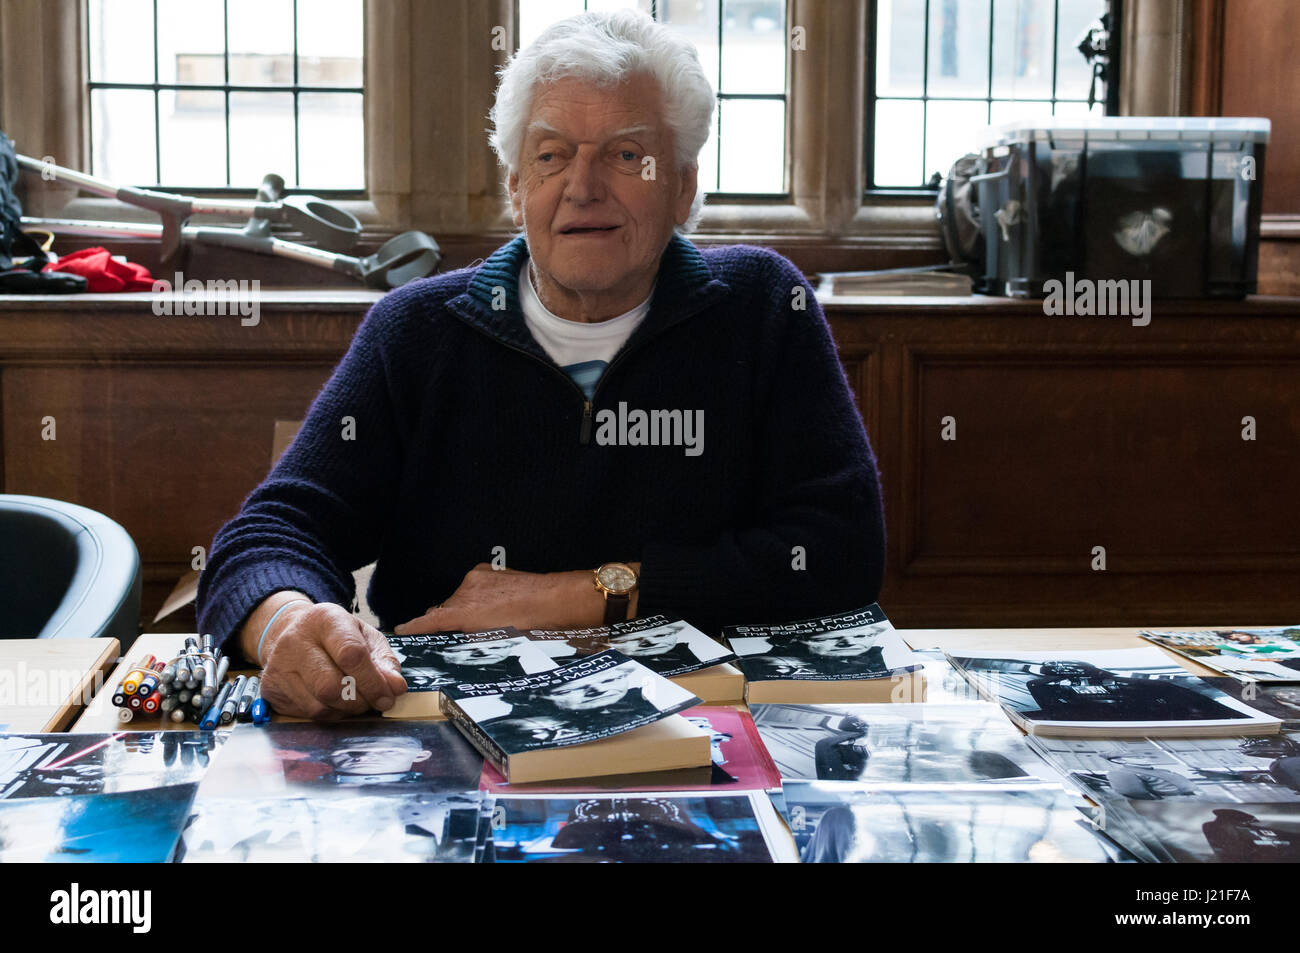 Dave Prowse MBE at the 2nd OxCon comic con in Oxford. Credit: Stanislav Halcin/Alamy Live News - Stock Image